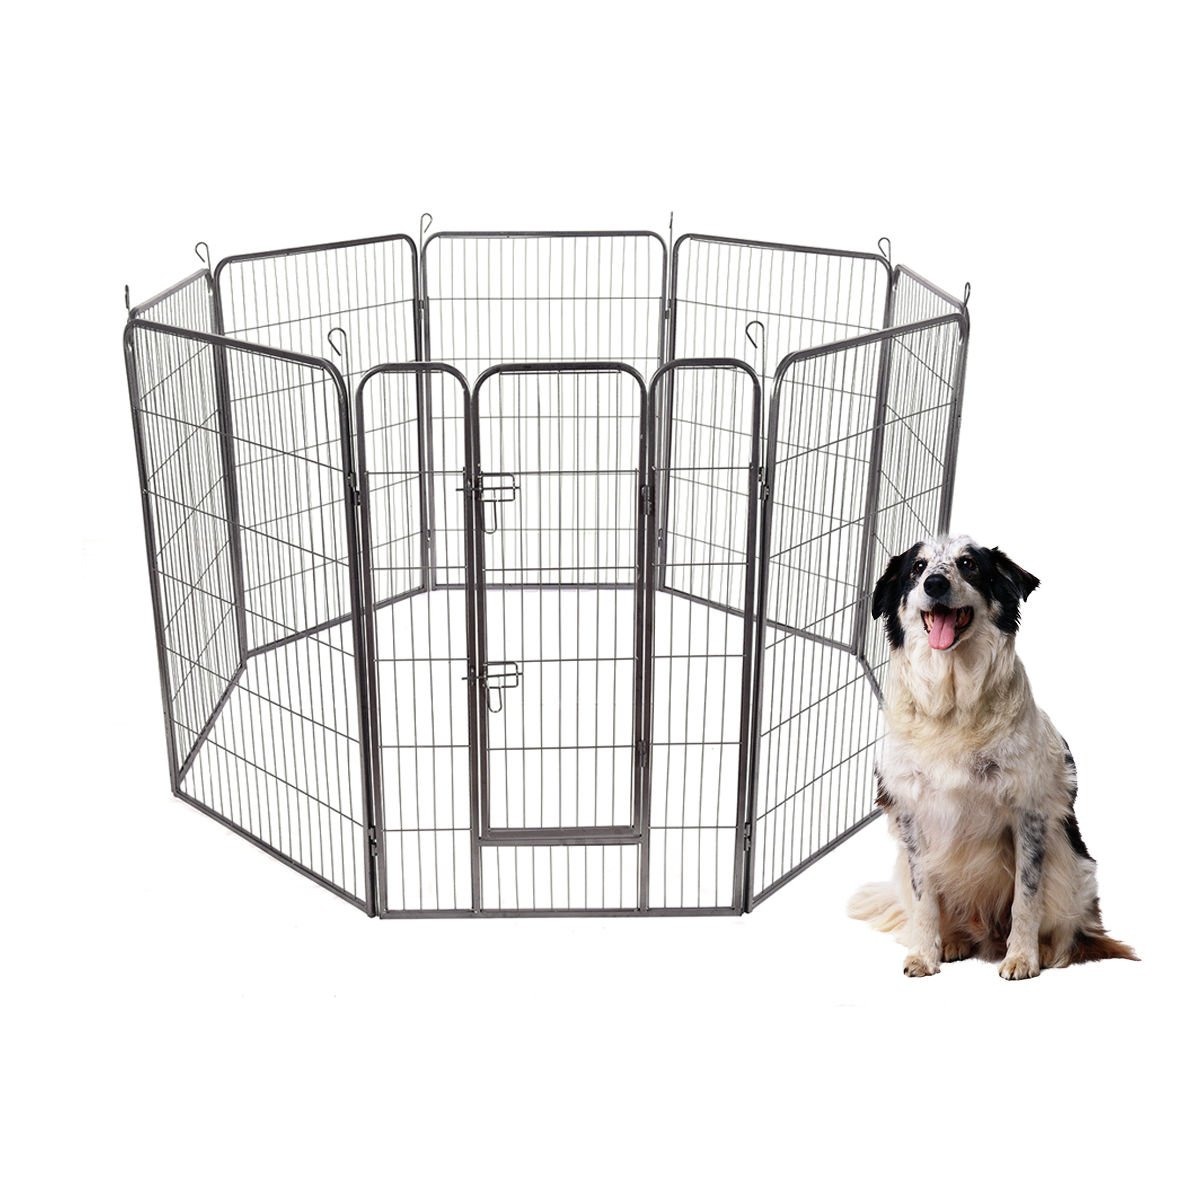 S AFSTAR Safstar 48 40 32 24 High 8 Panels Pet Playpen Dog Pets Fence Exercise Pen Gate with Door